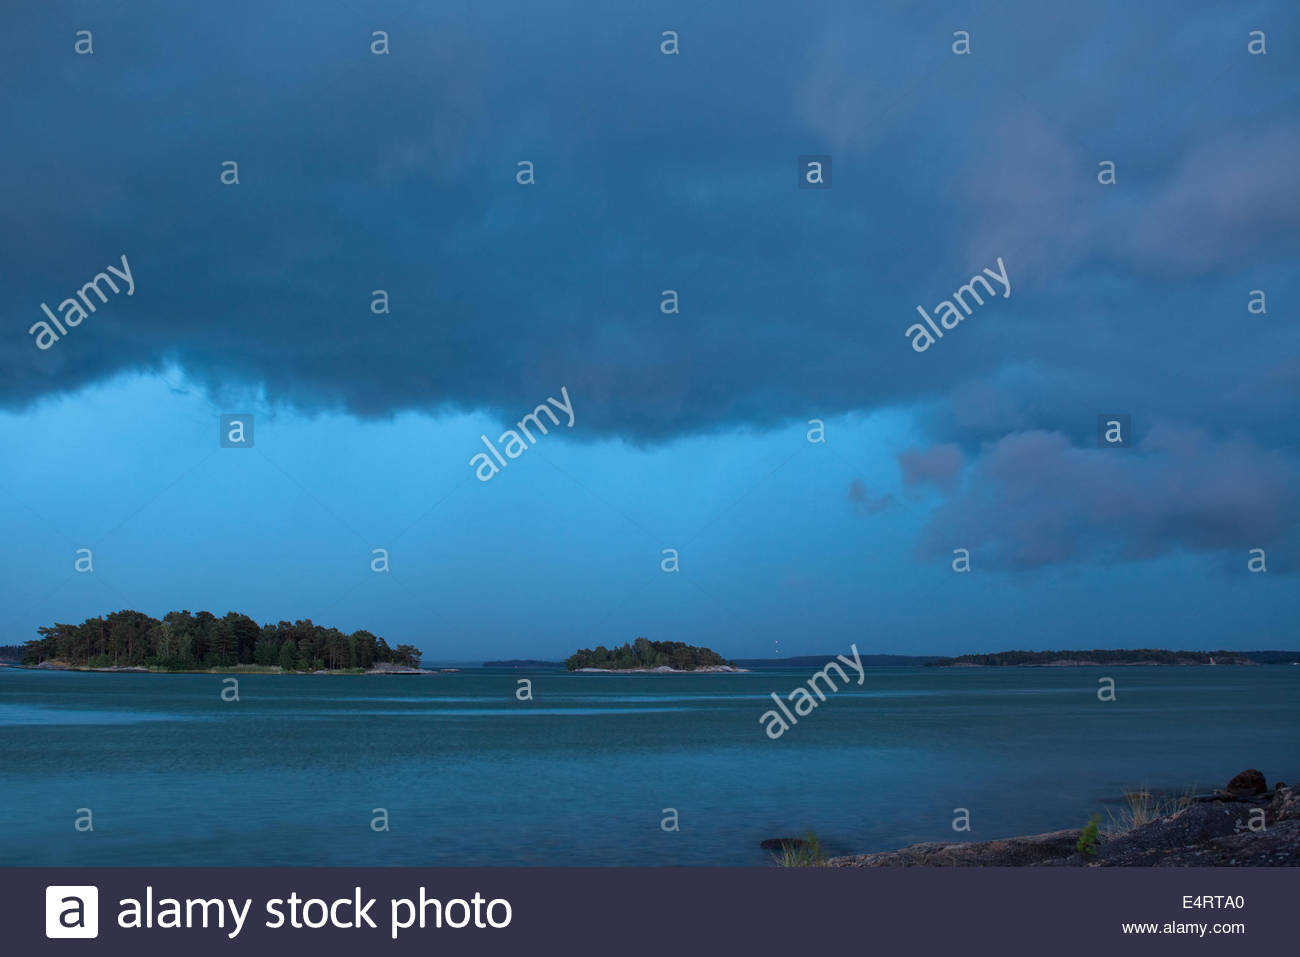 Thunder is coming - Stock Image